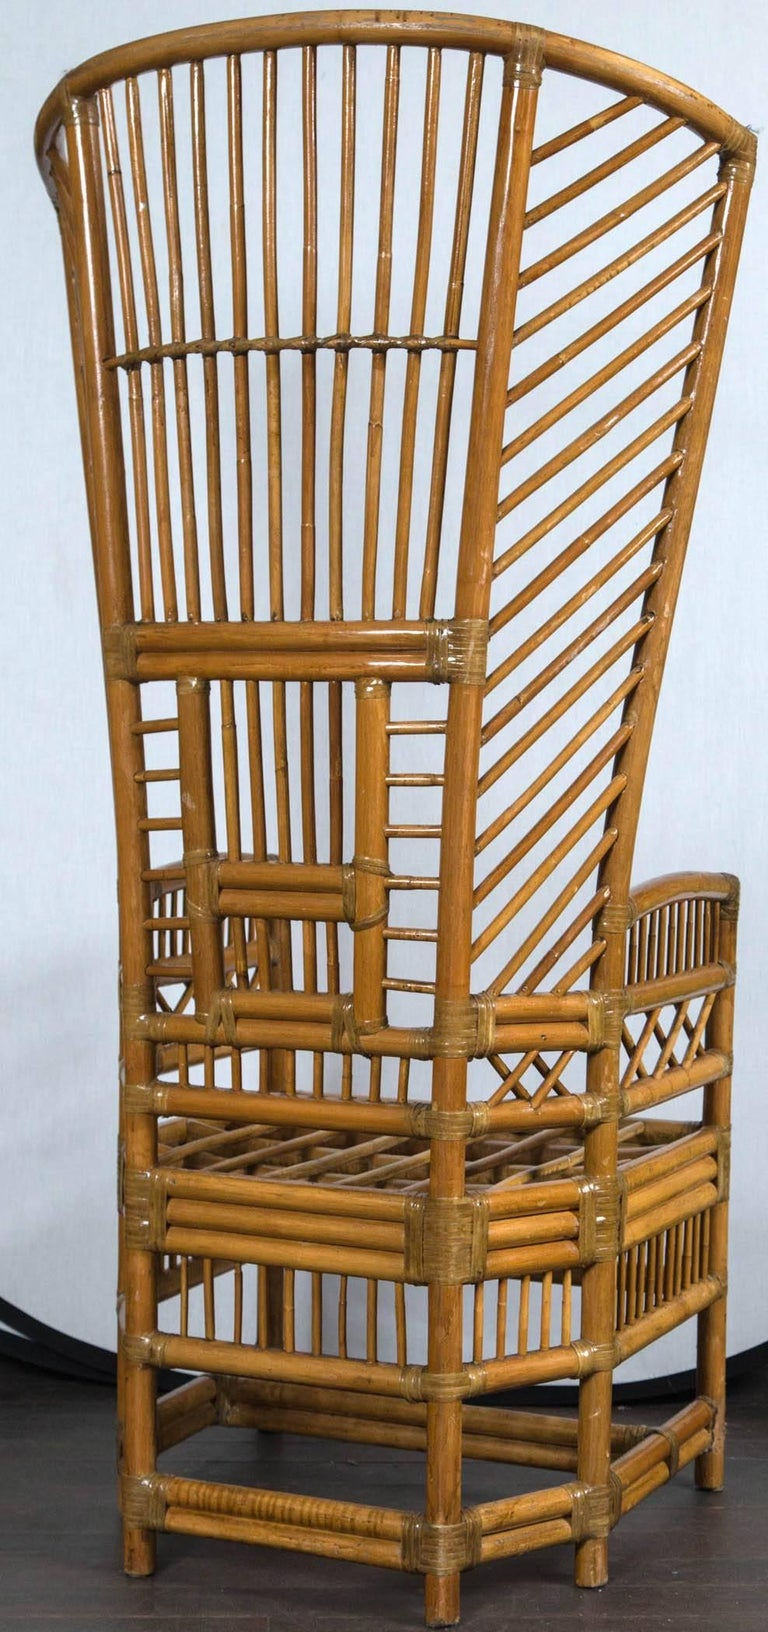 Pair of High Back Rattan Armchairs For Sale at 1stdibs